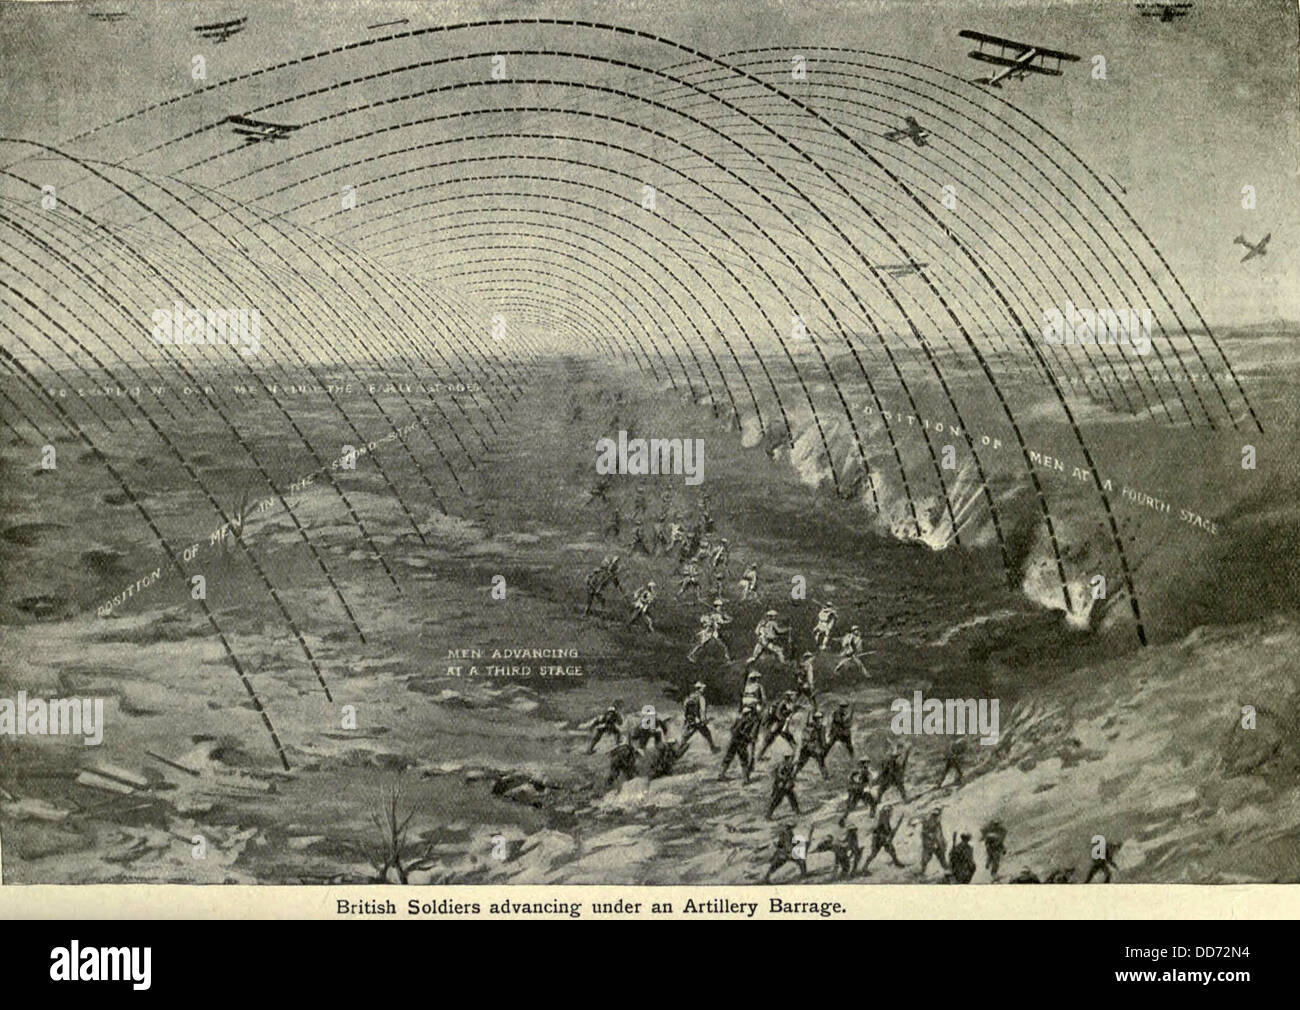 hight resolution of diagram of british soldiers advancing under a creeping artillery barrage western front ca 1915 1918